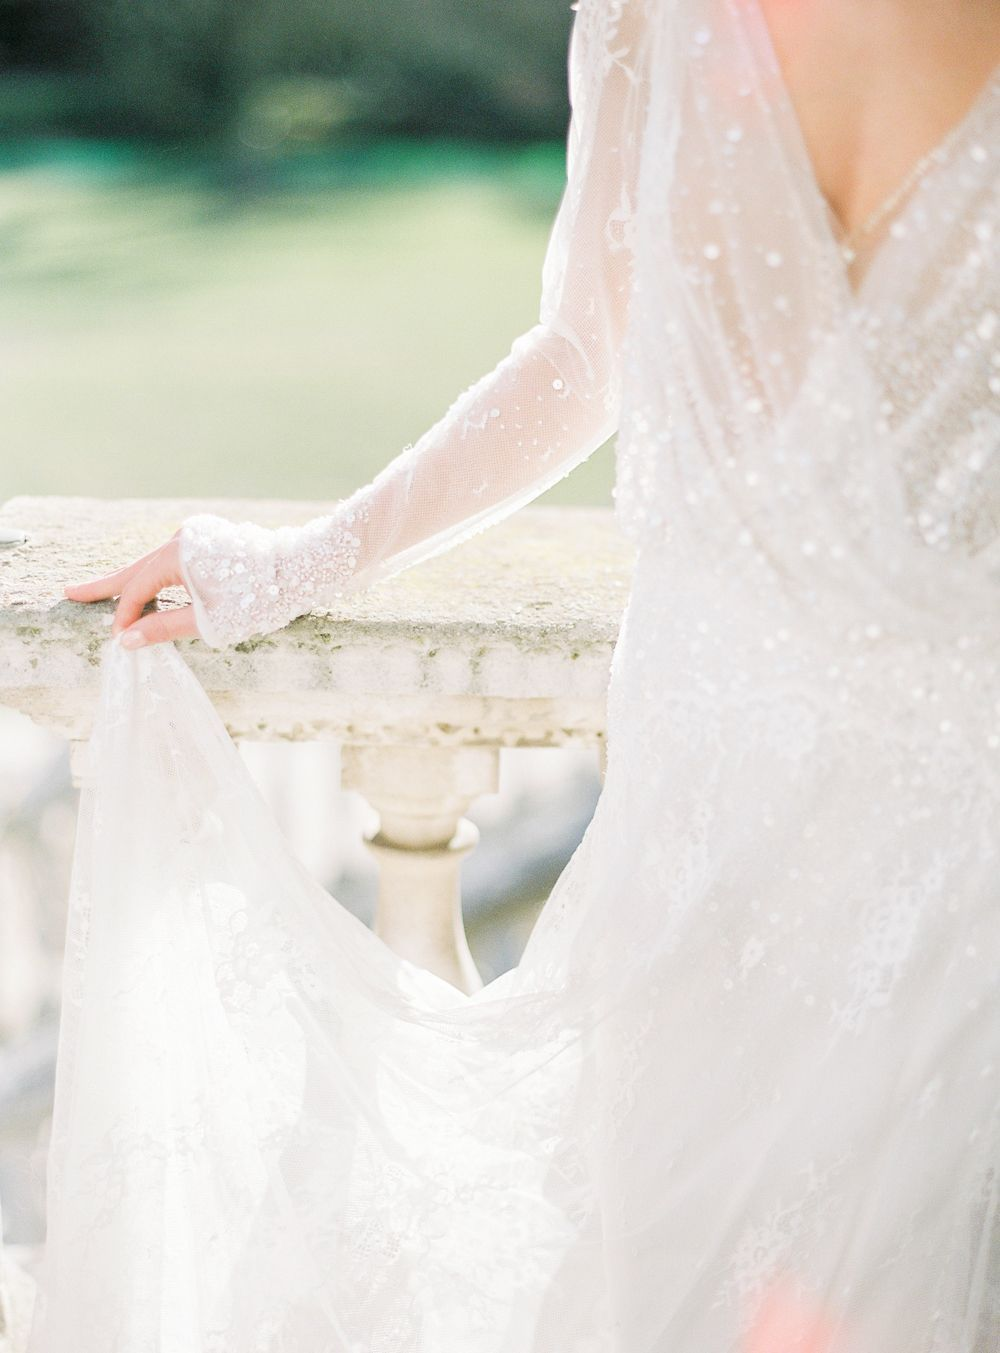 005Julie-Michaelsen-Photography_OnceWed